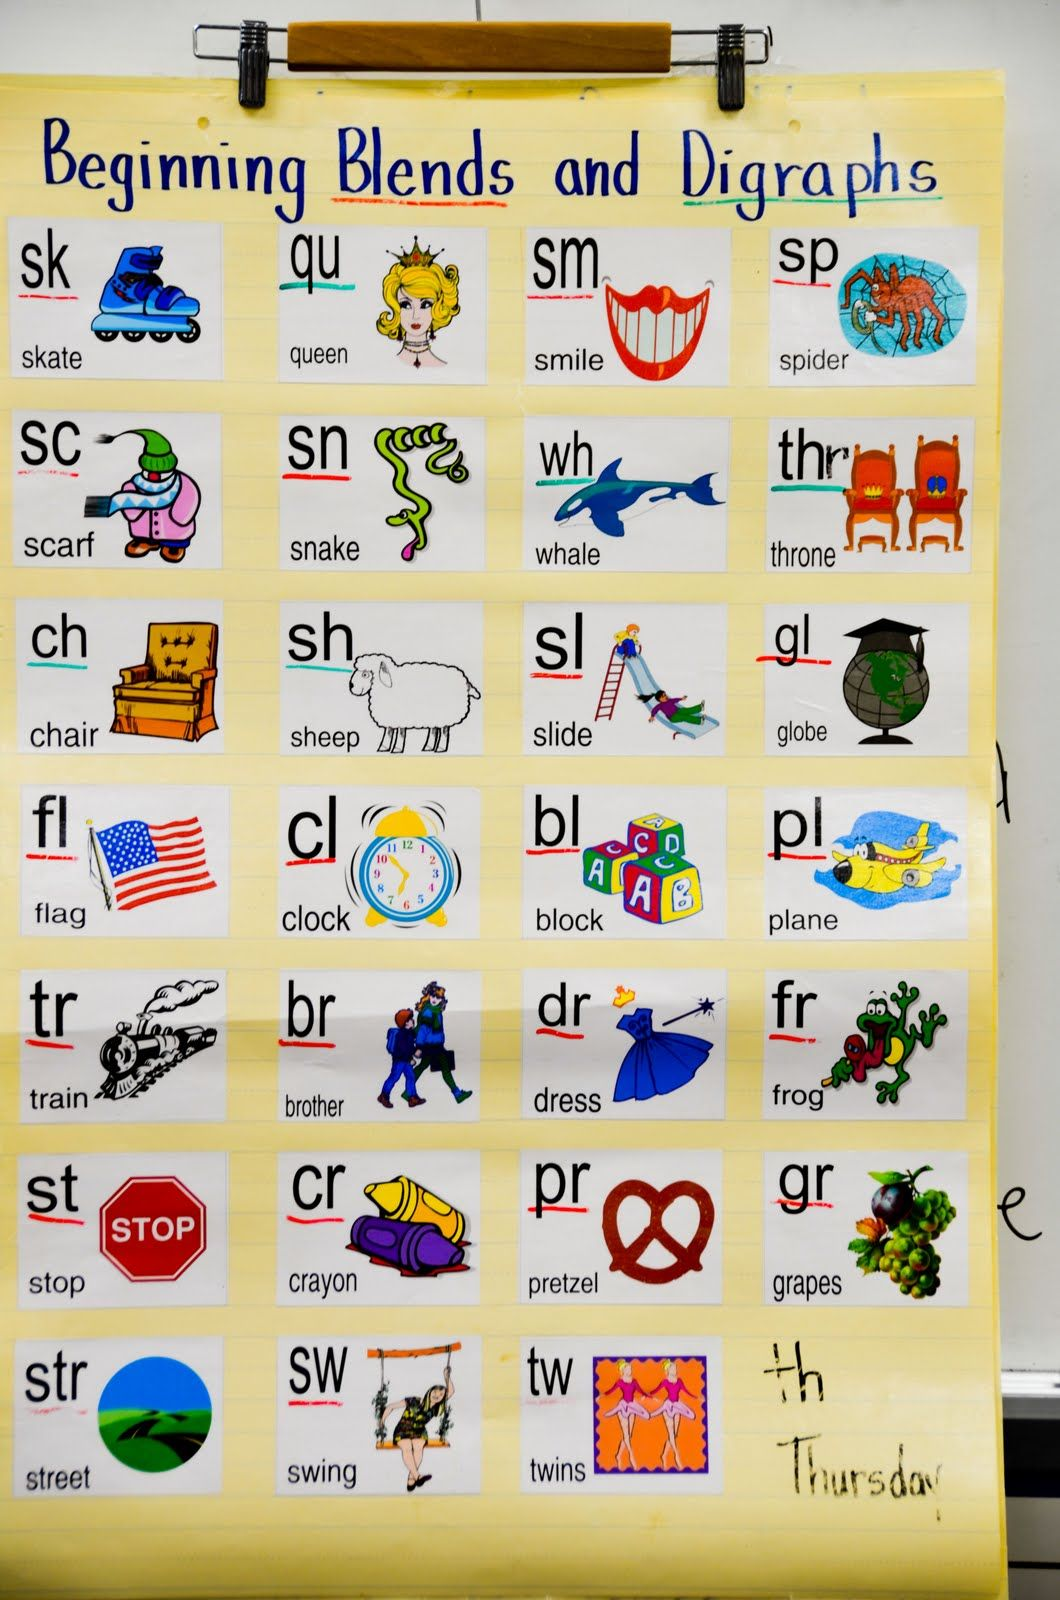 Anchor Chart For Beginning Blends And Digraphs Also Has A